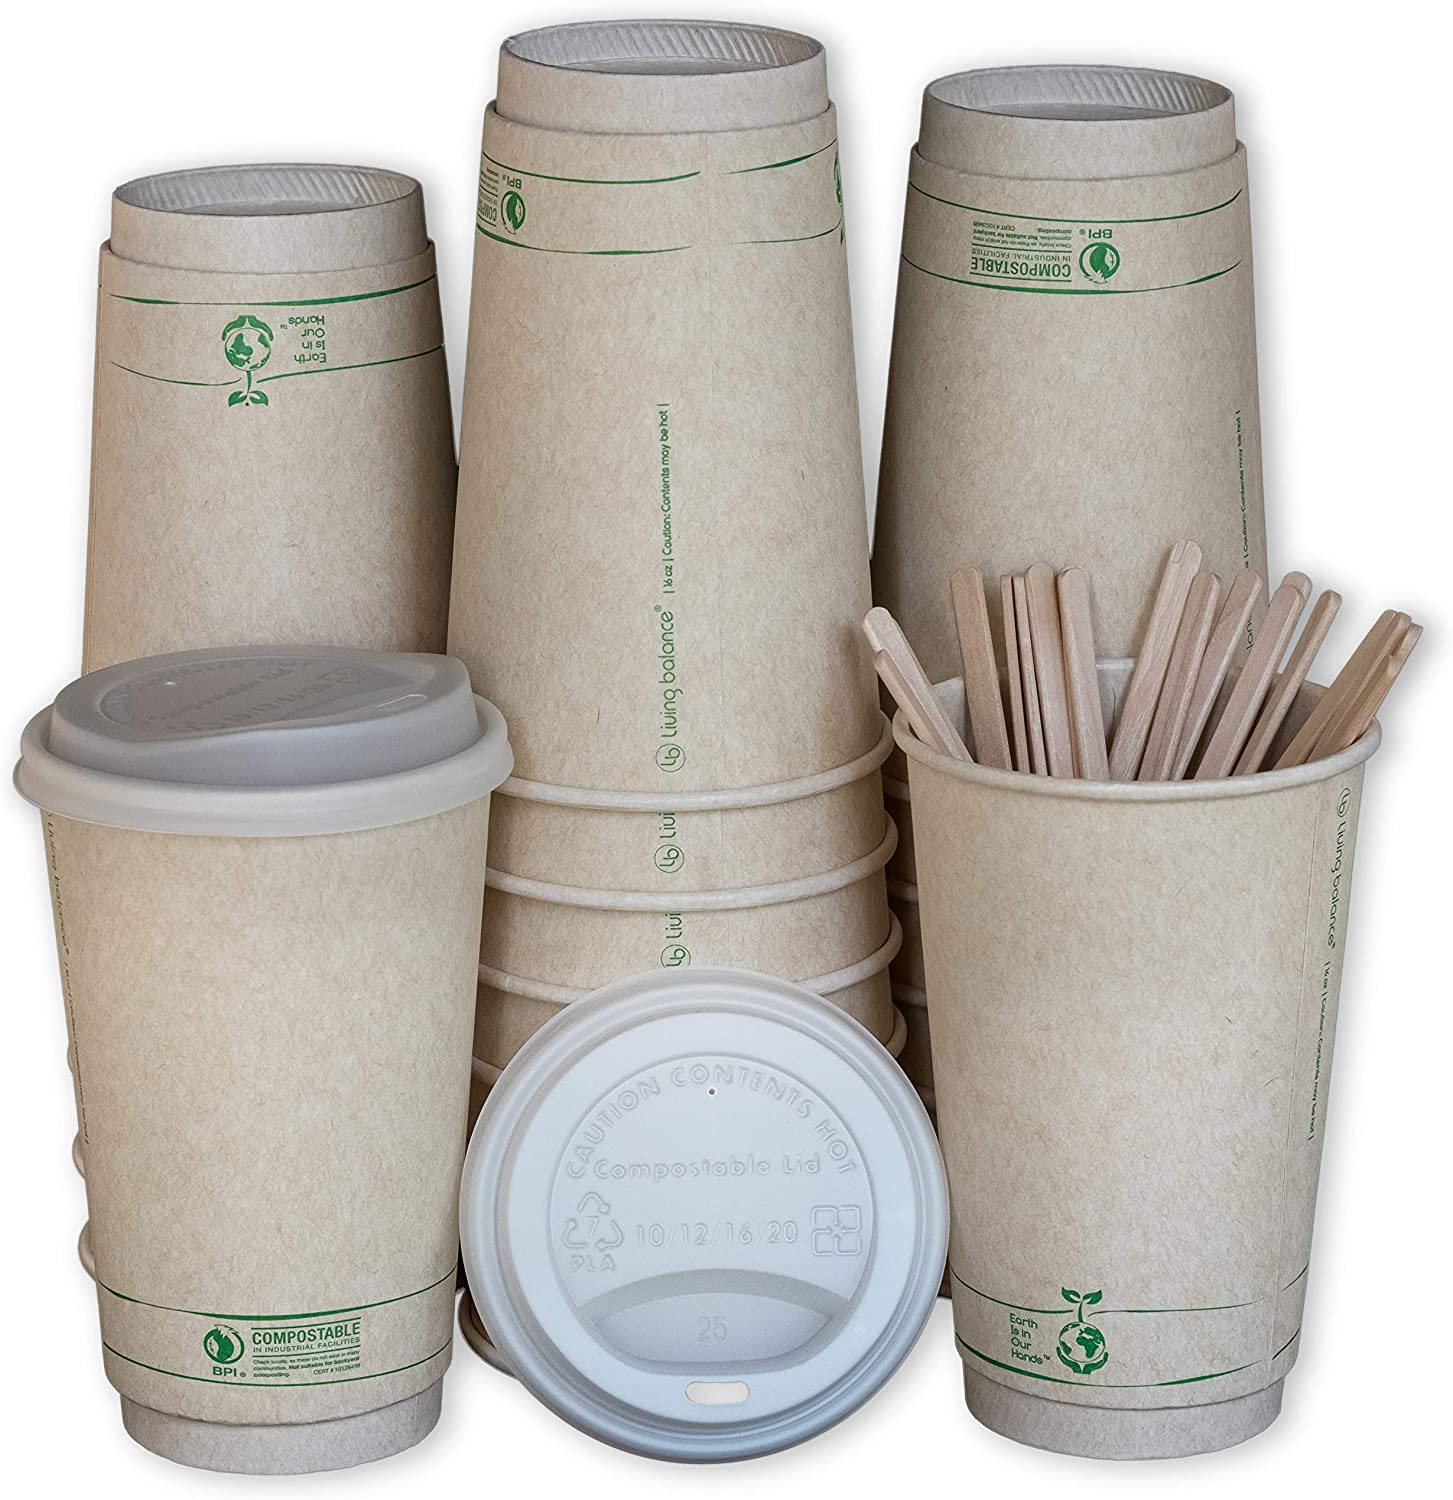 Compostable Disposable Coffee Cups To Go with Lids, Wooden